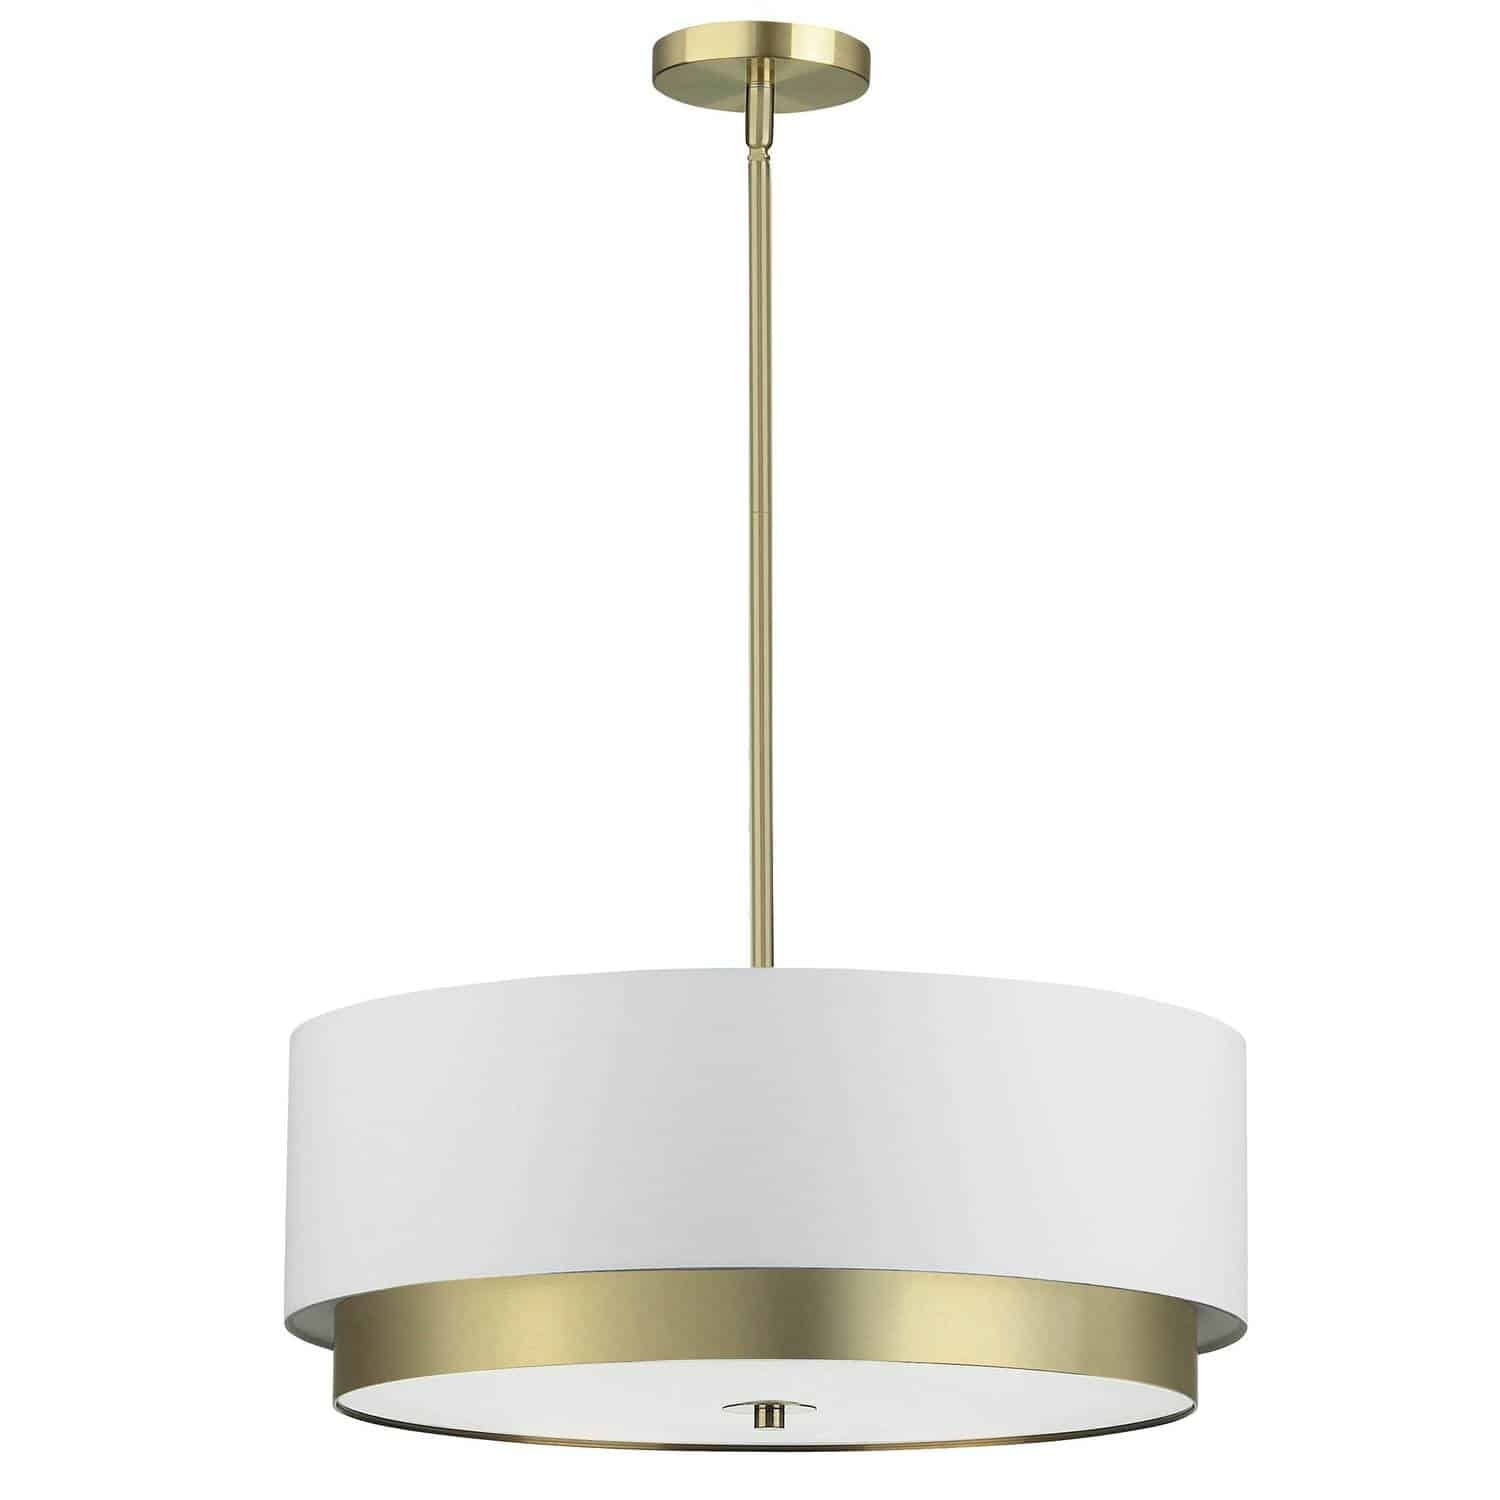 4 Light Large Pendant, Aged Brass with White Shade, Frosted Glass Diffuser